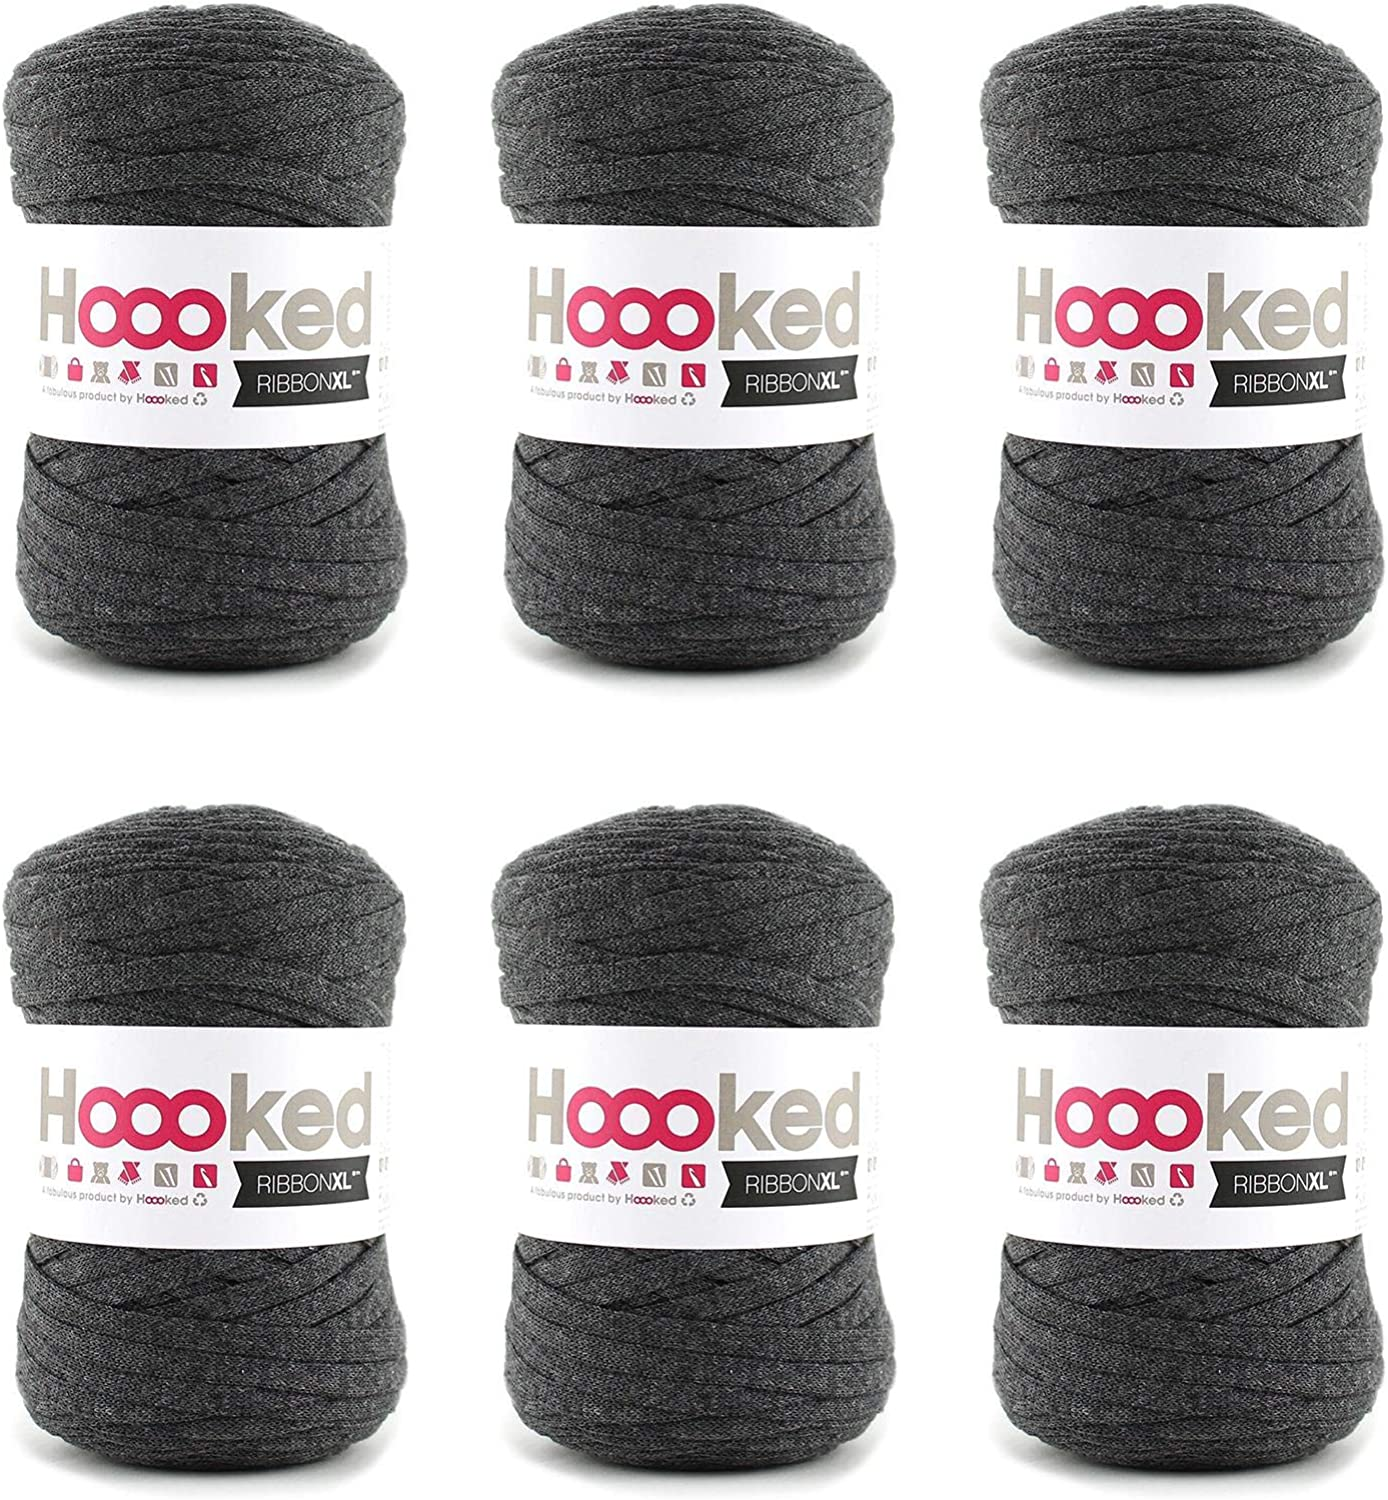 Hoooked RibbonXL Charcoal Anthracite 80% Cotton TShirt Yarn  120m (393.7'), 250g, Pack of 6